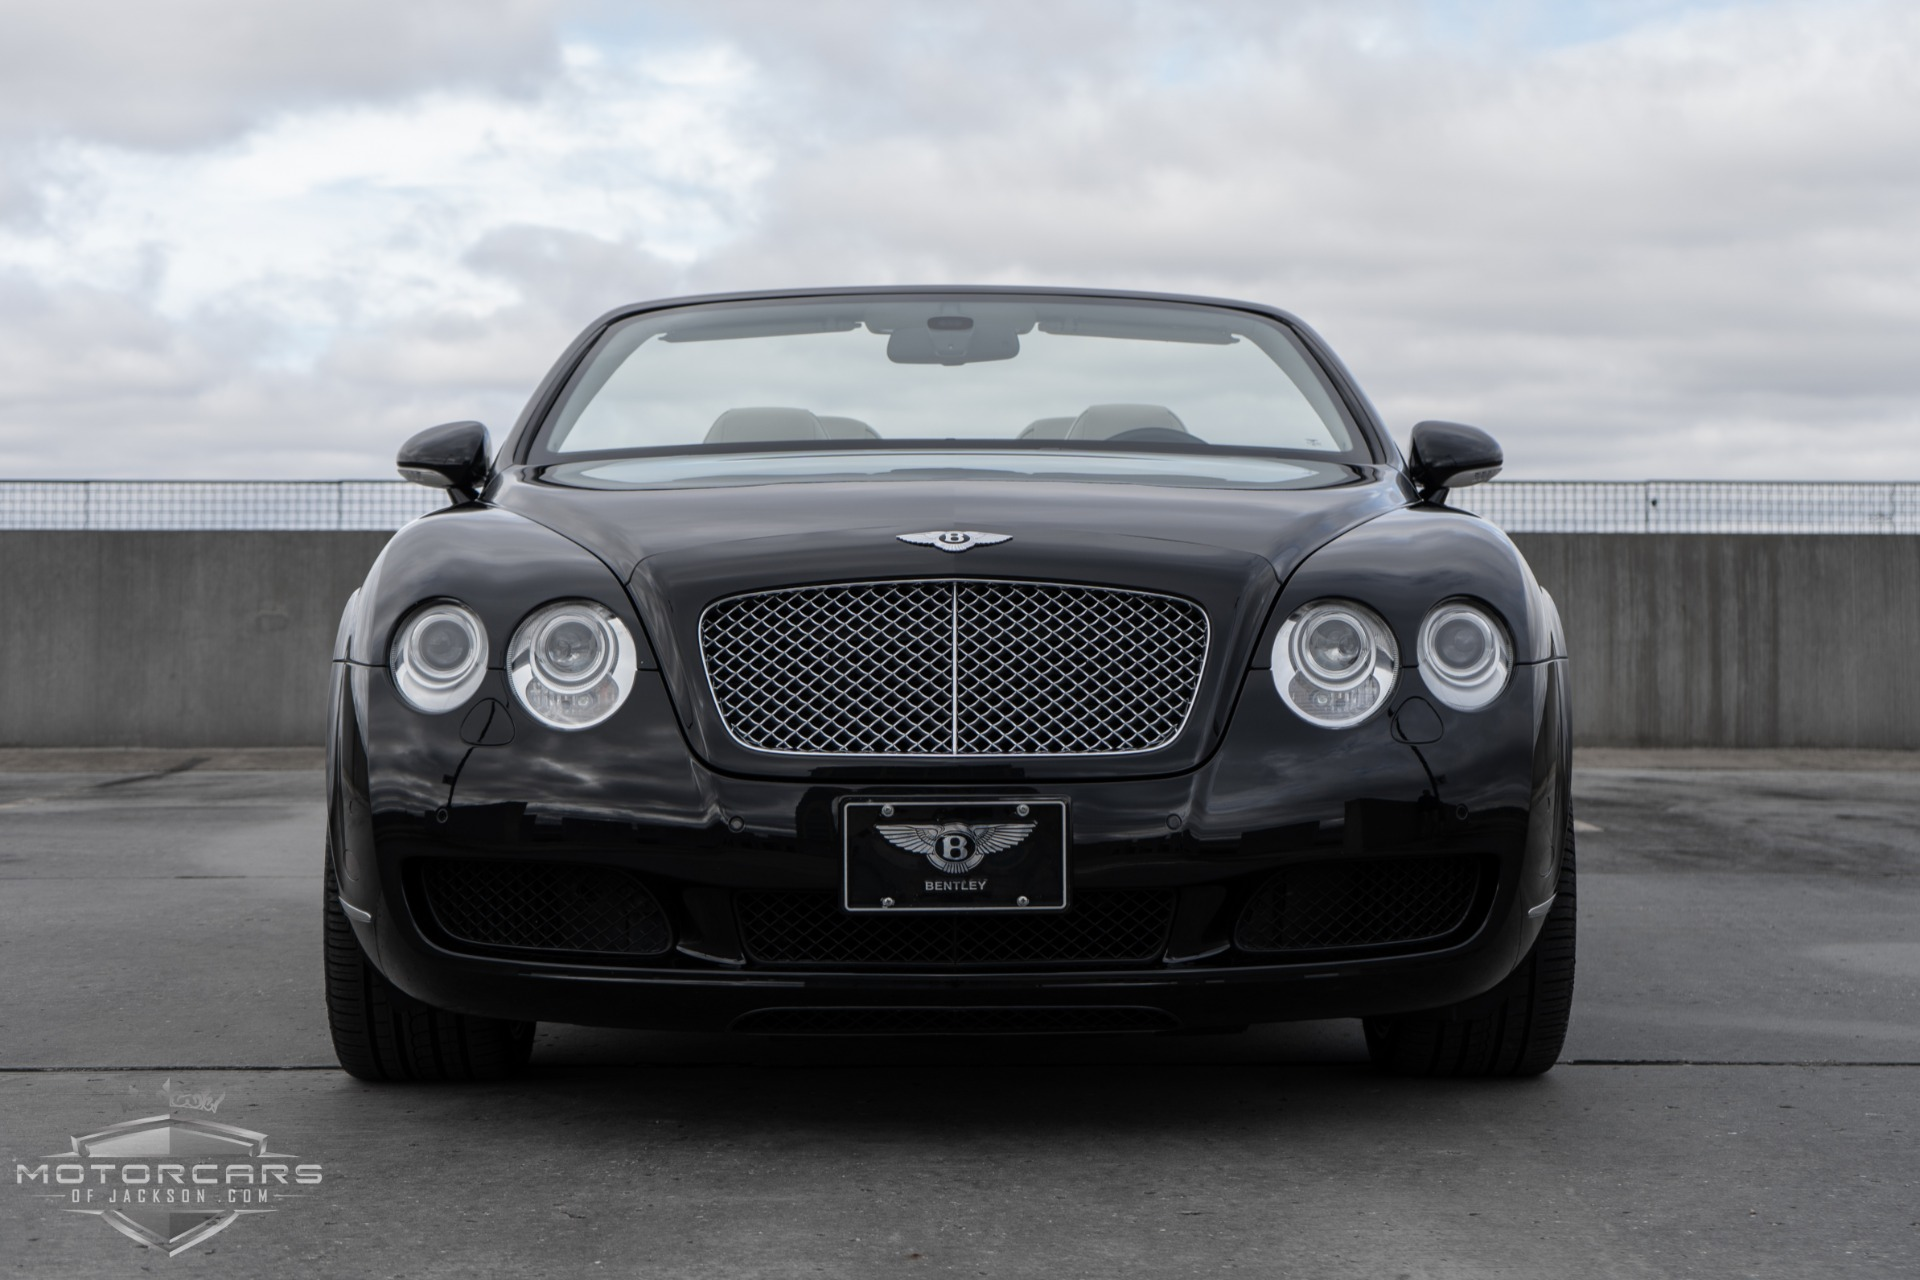 Used-2009-Bentley-Continental-GT-Convertible-Jackson-MS